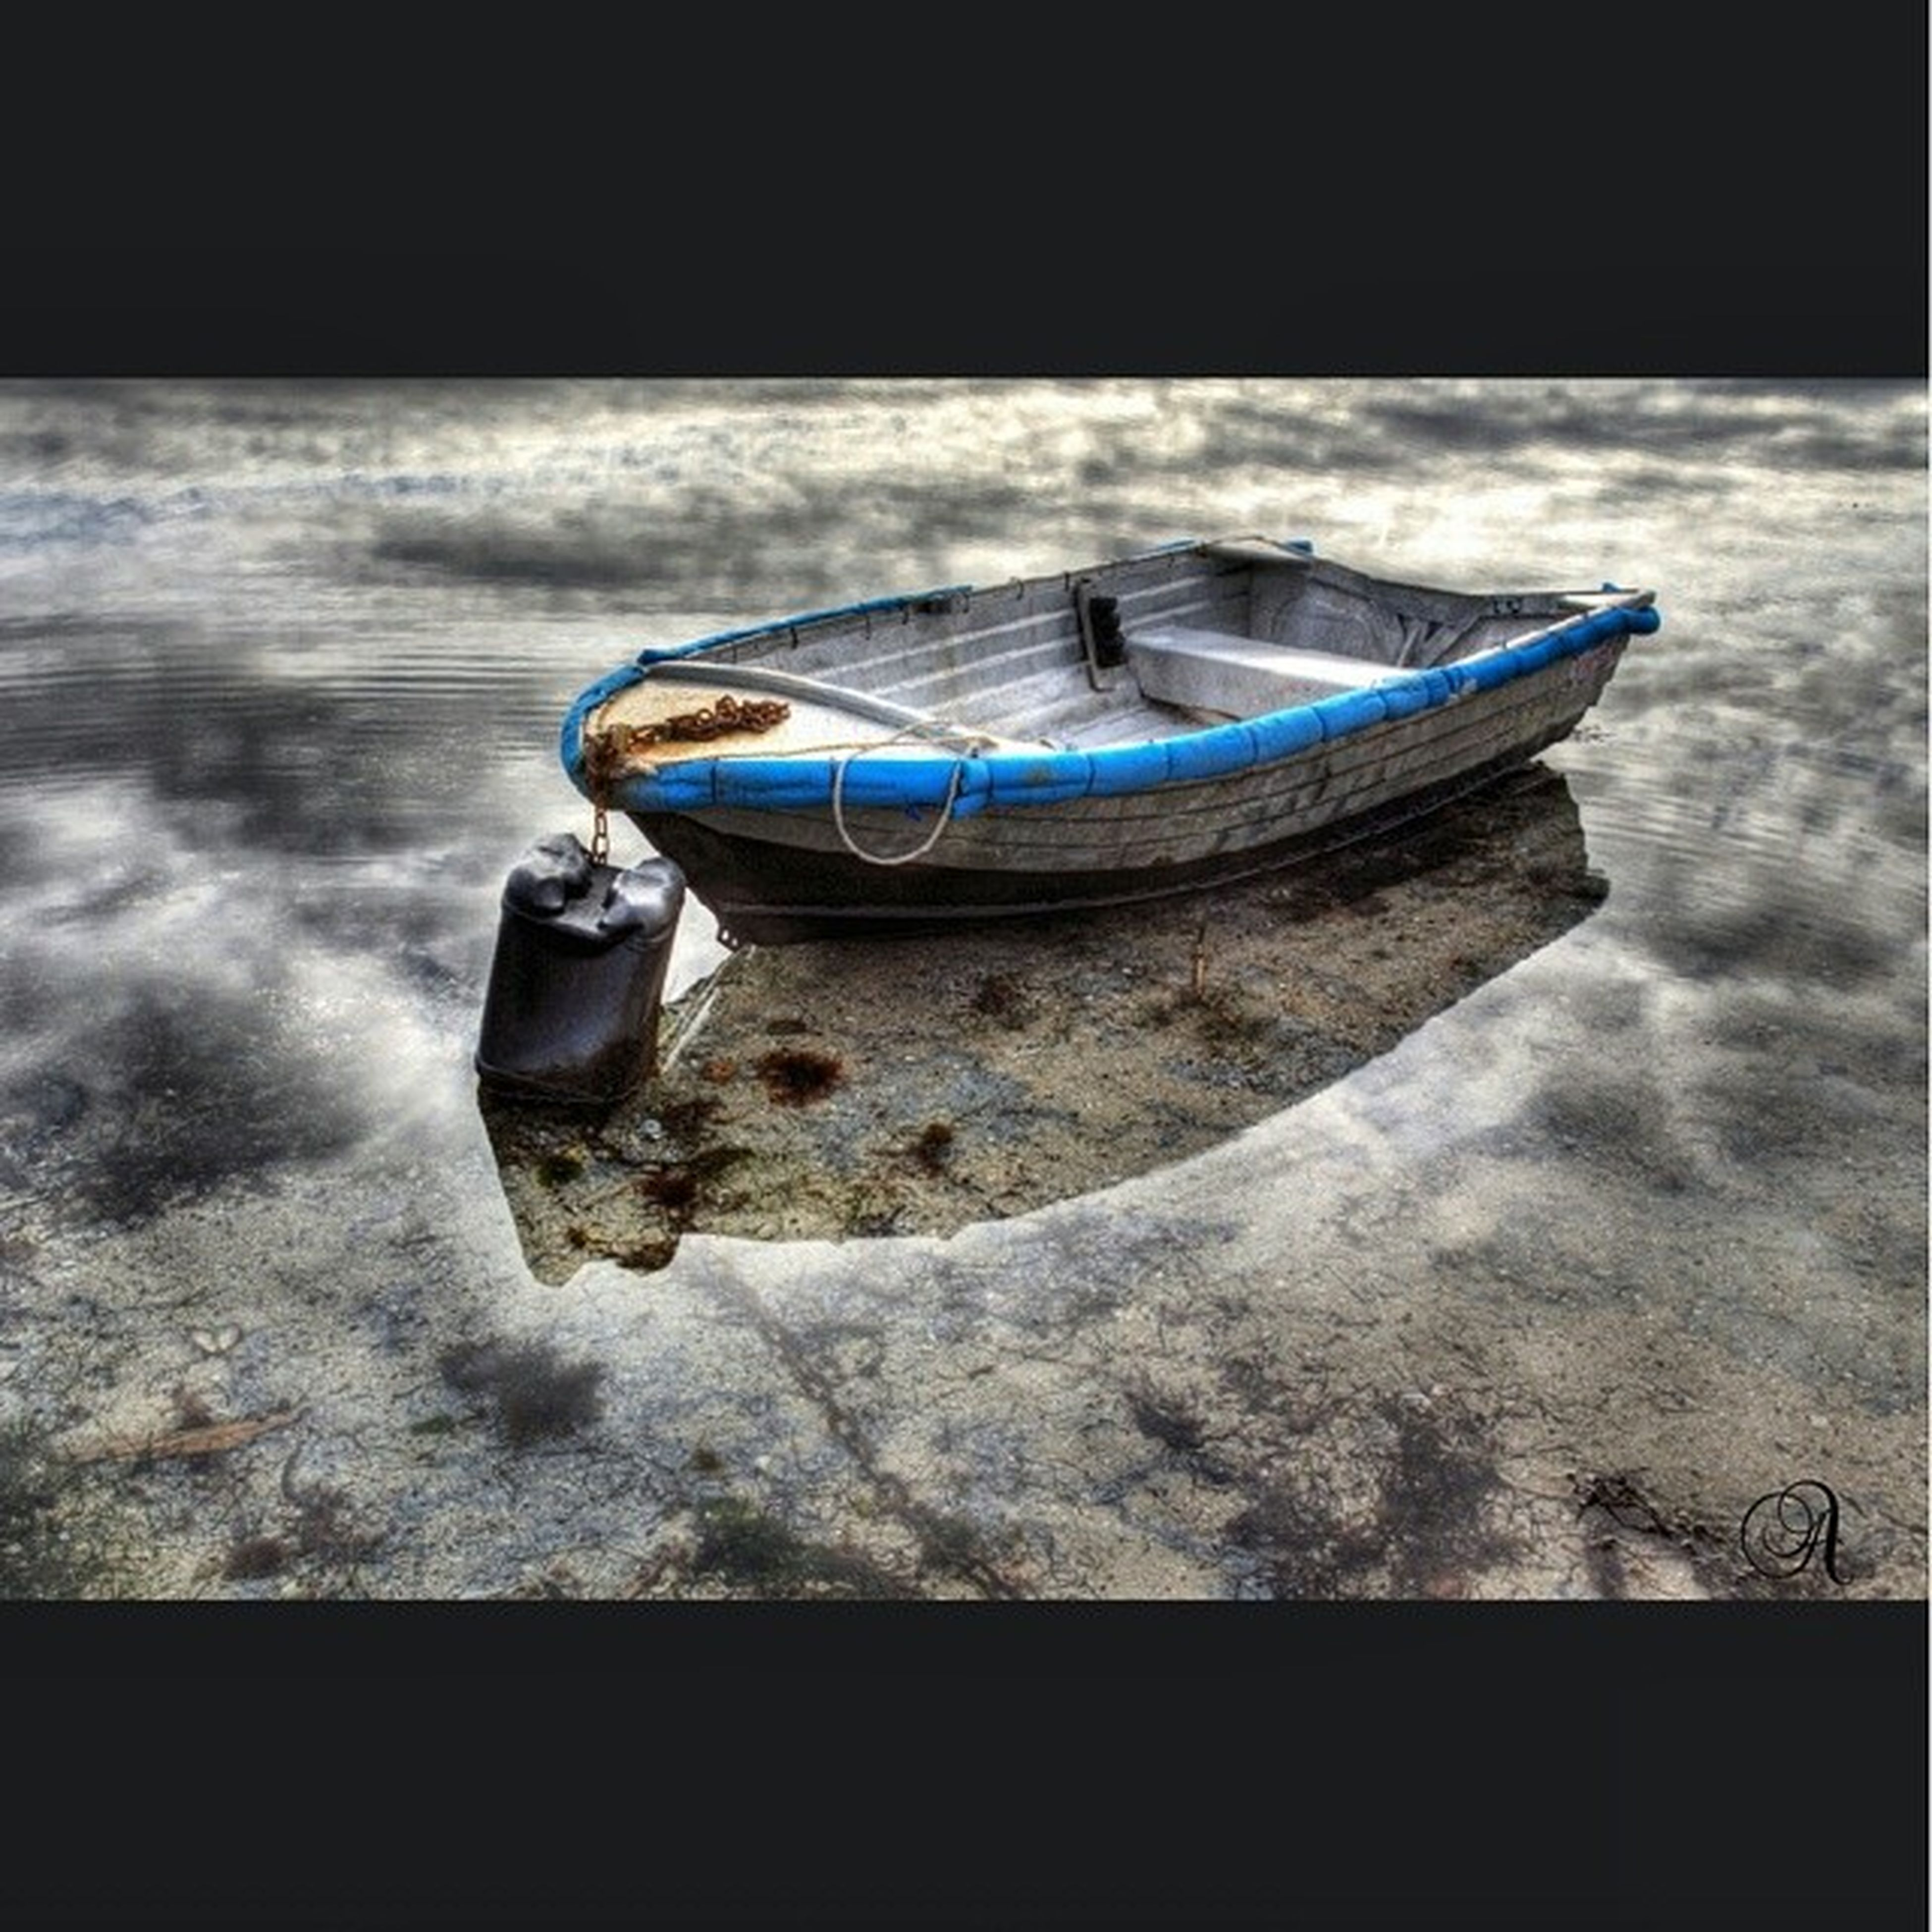 nautical vessel, boat, transportation, mode of transport, water, moored, sea, nature, day, outdoors, lake, side view, rope, blue, one animal, rock - object, tranquility, travel, no people, selective focus